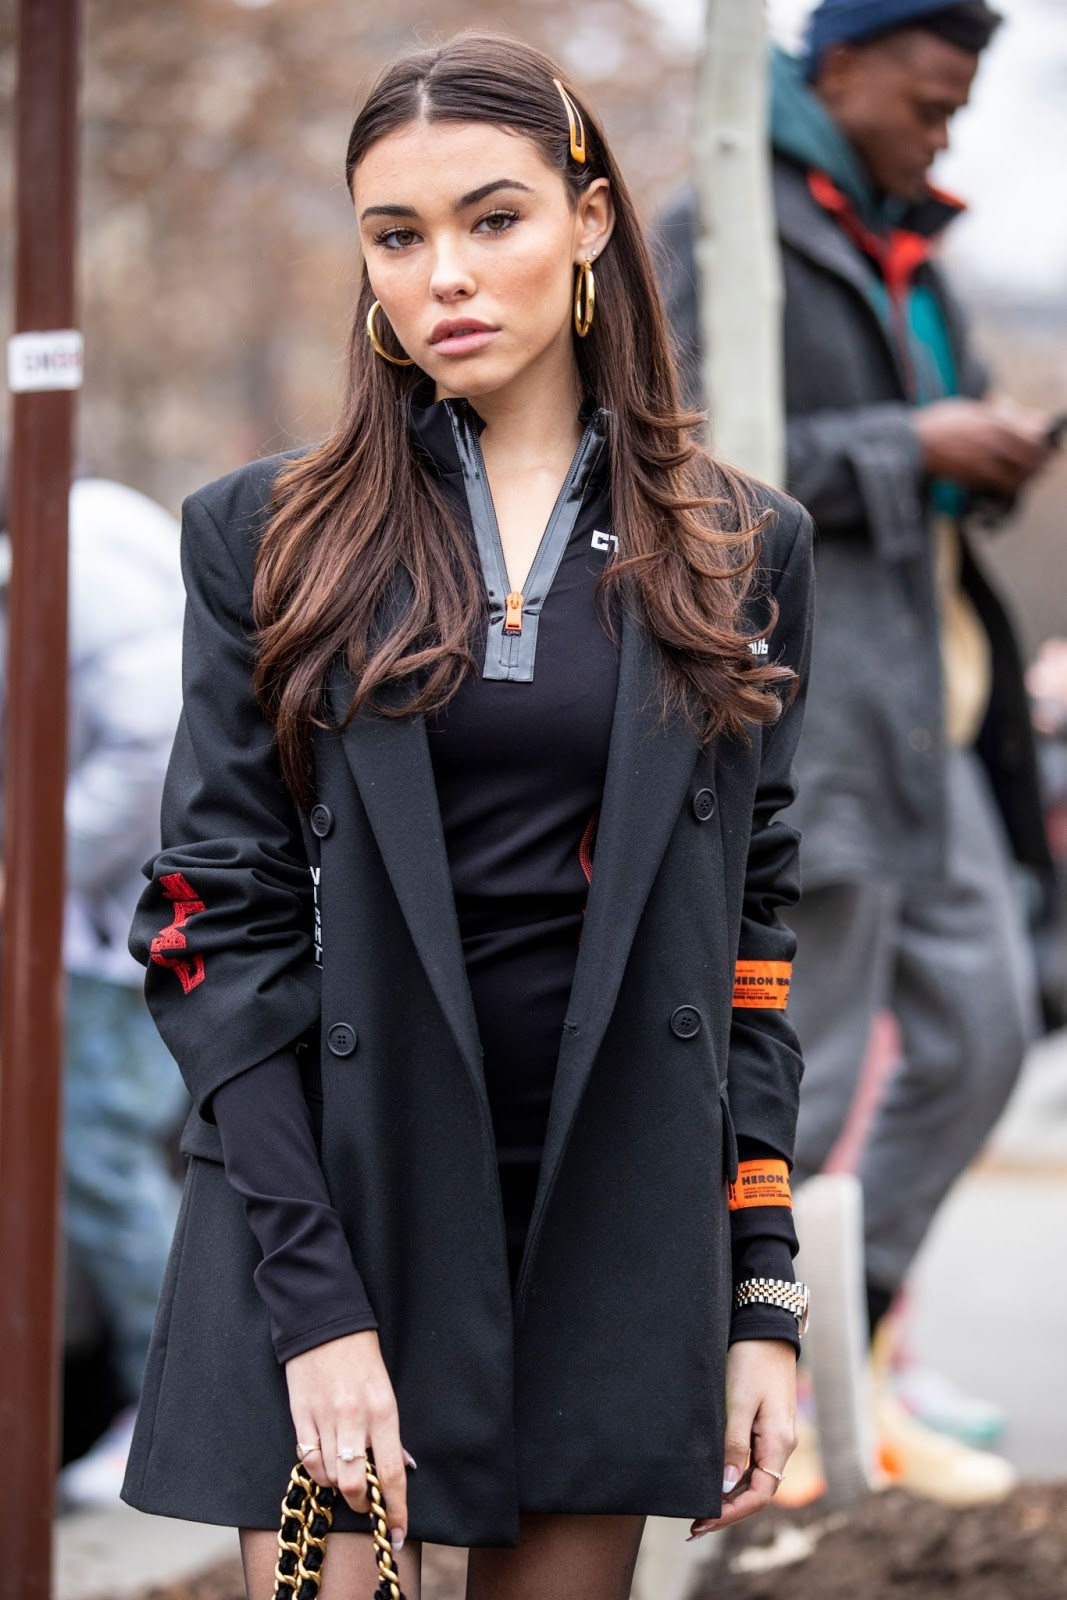 Madison Beer - Spotted after the Heron Preston show in Paris, France - 01/15/2019